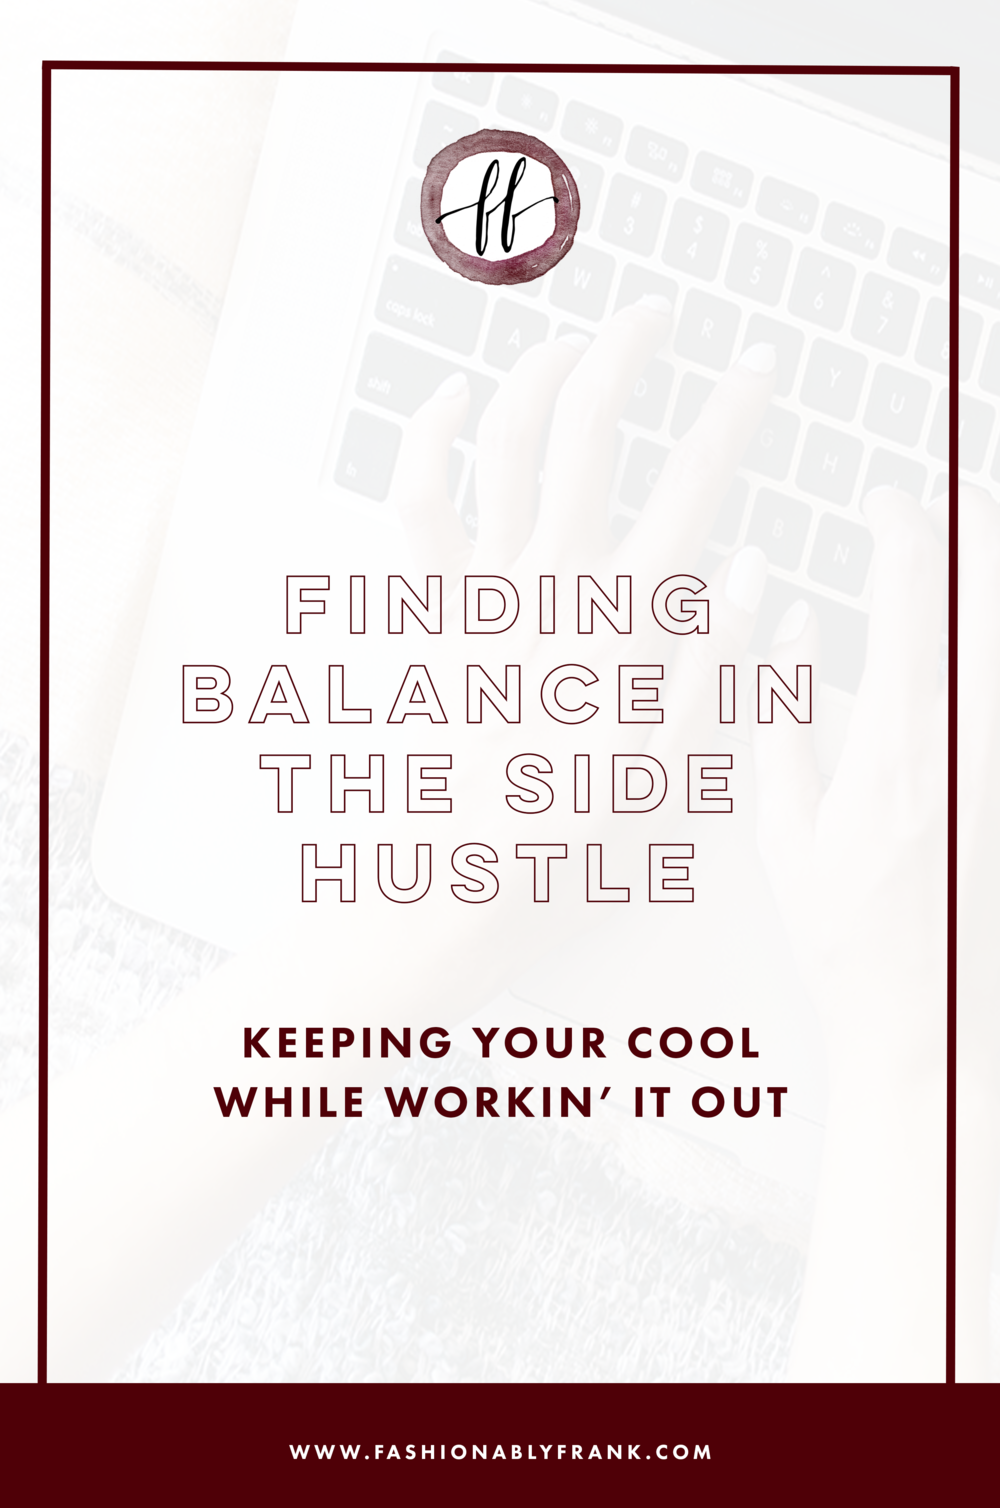 Finding Balance in the Side Hustle